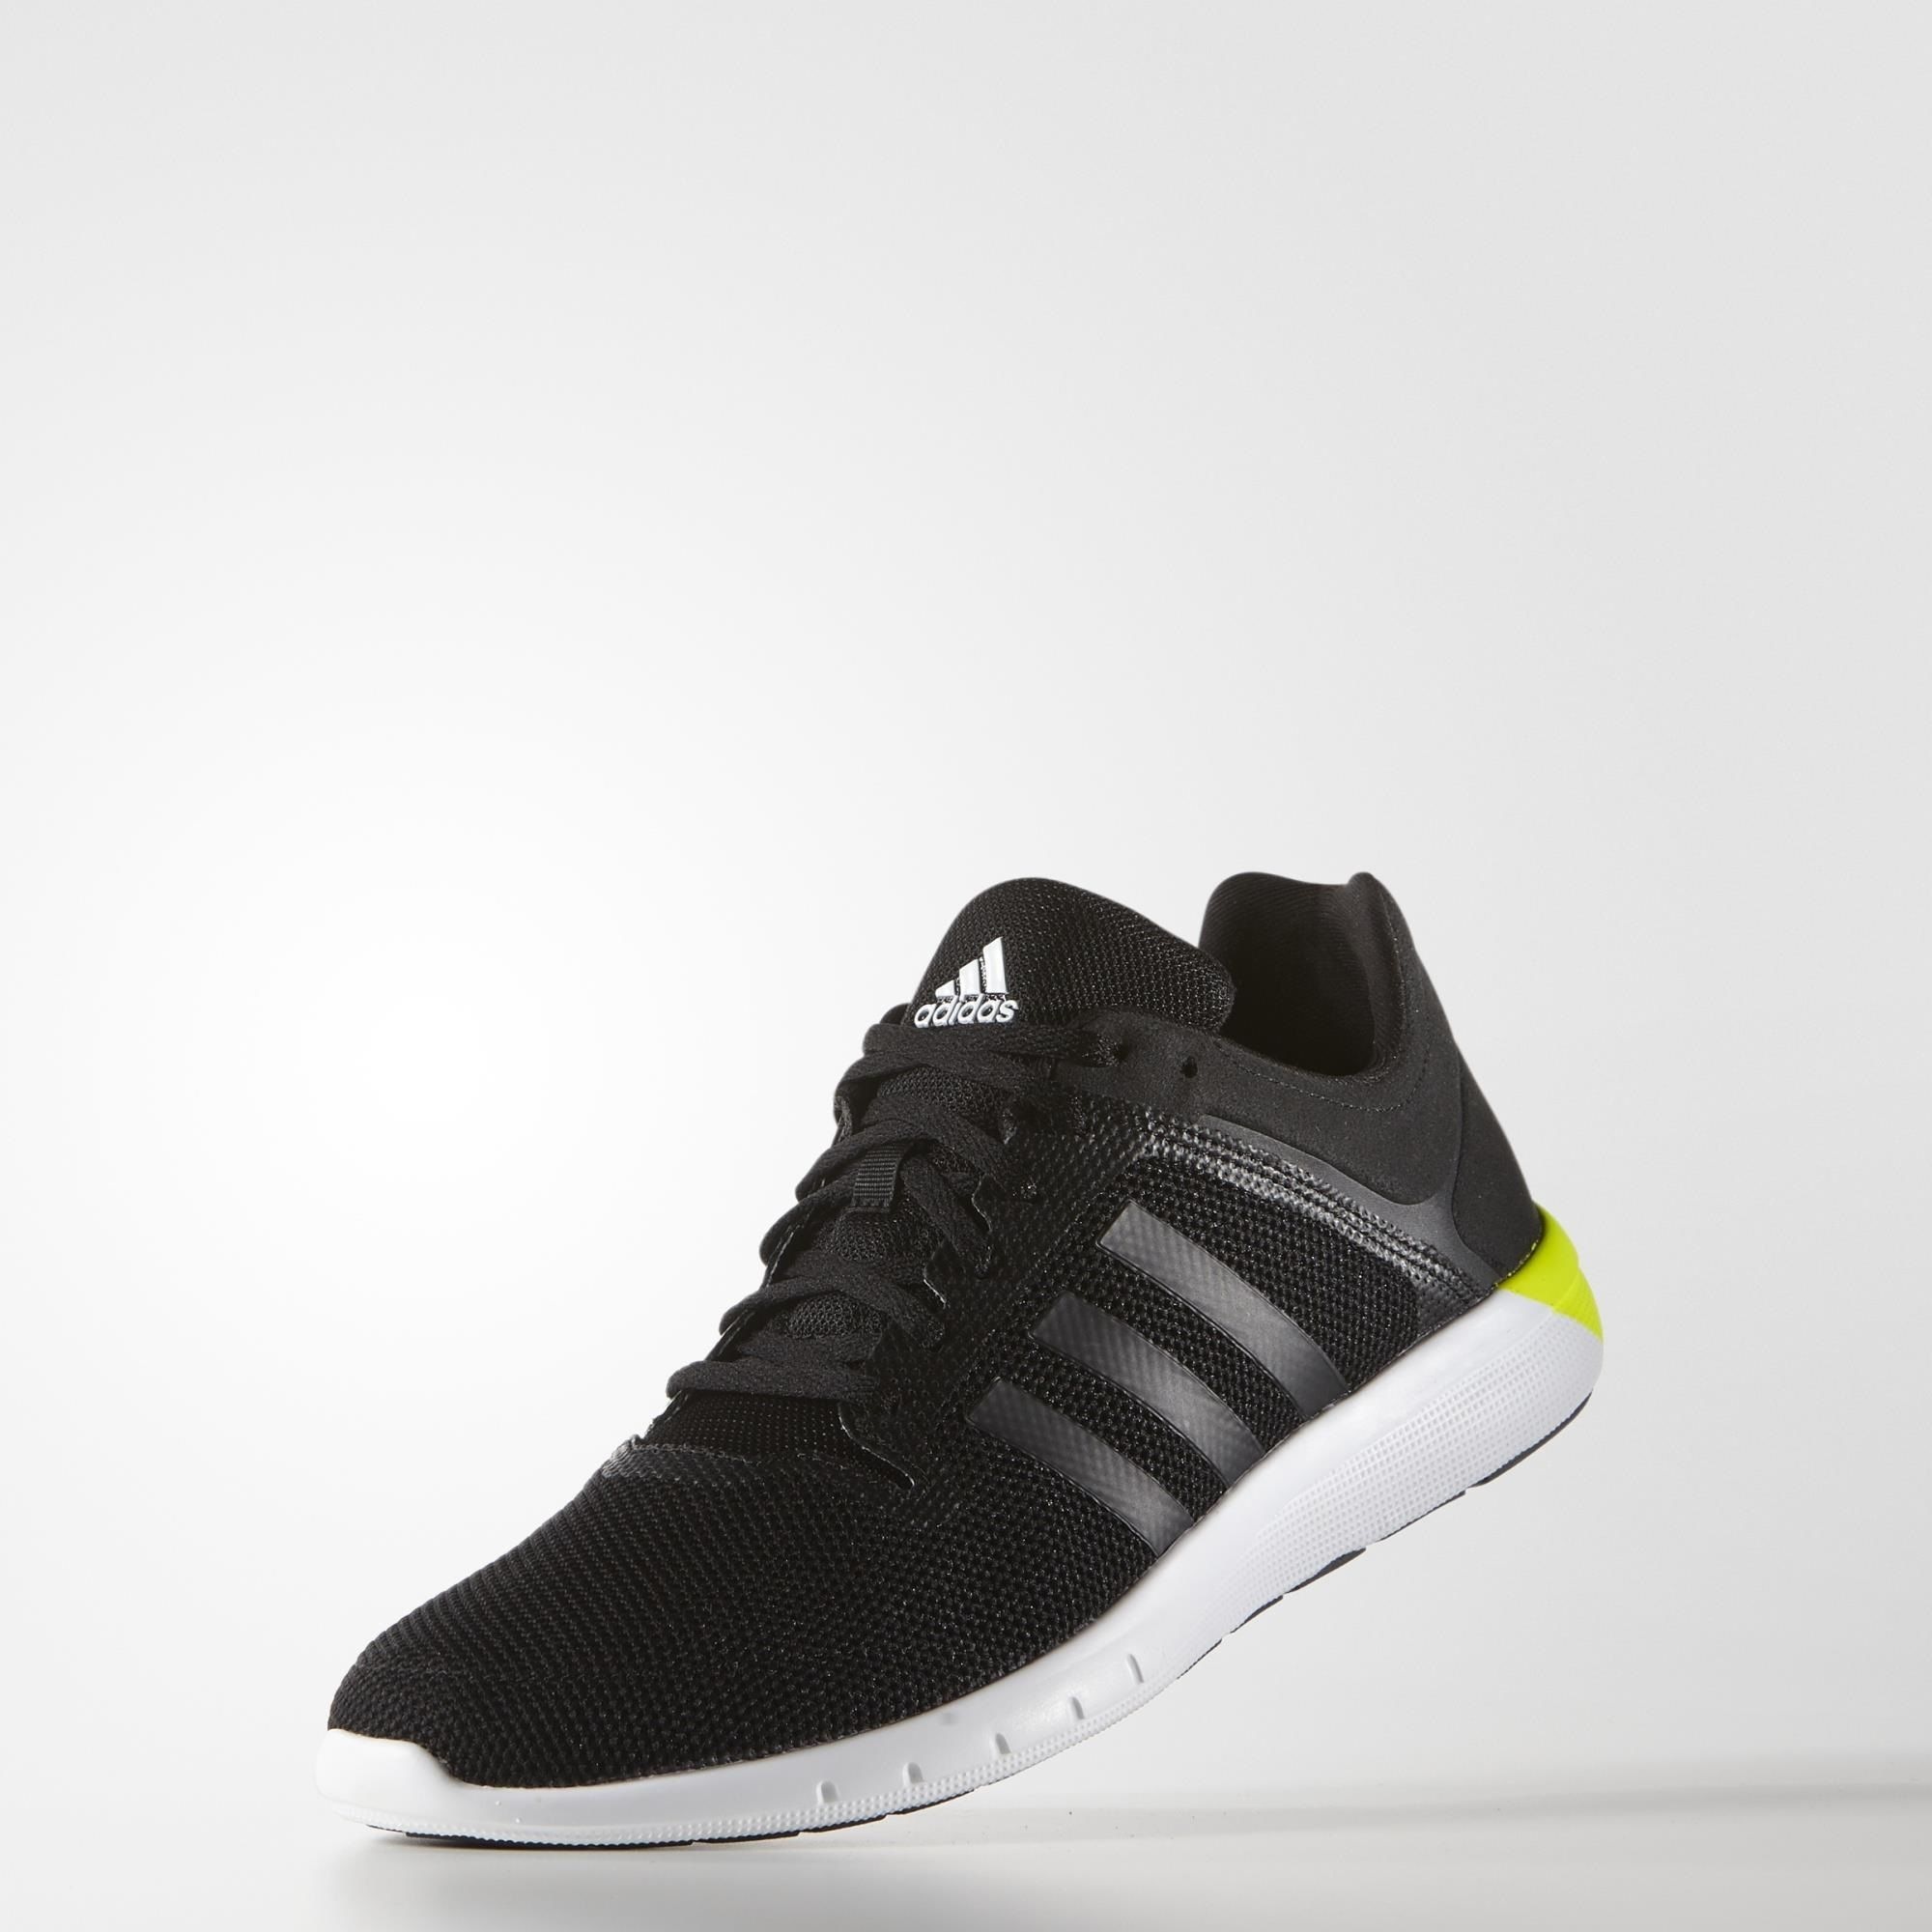 Comfortable Adidas Climacool Fresh Core black Shoes